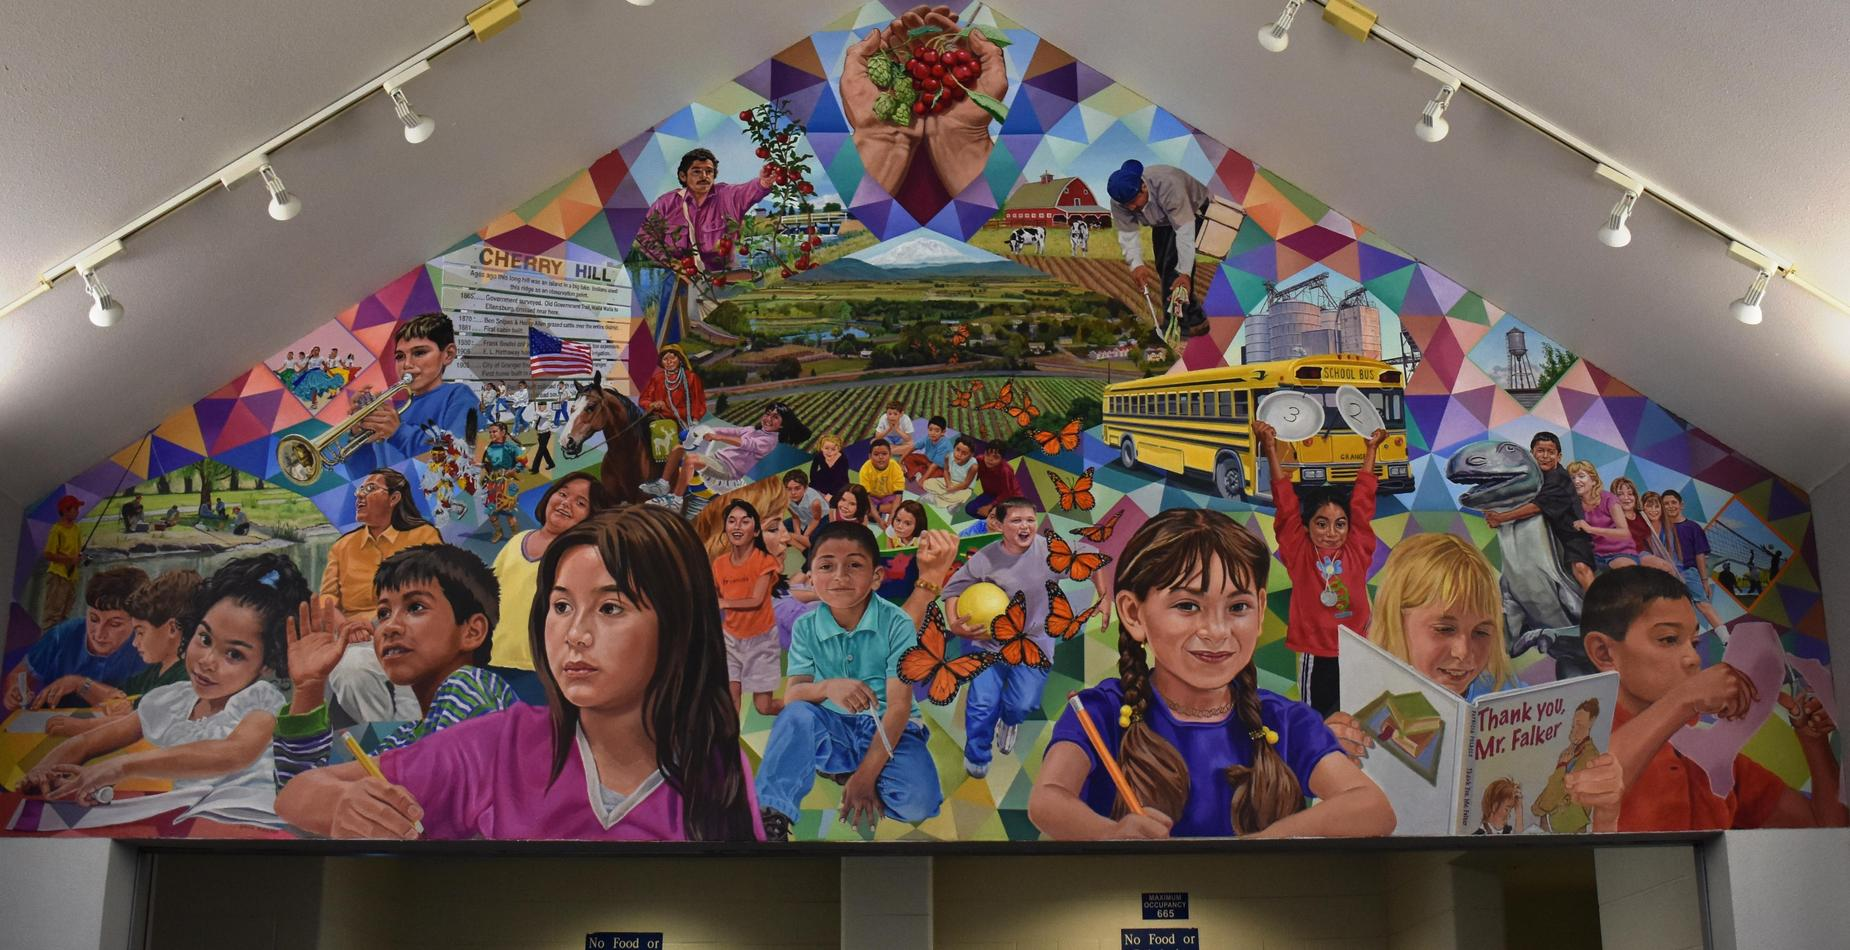 This is a mural created to represent Granger.  There are kids learning, playing, and dinosaurs